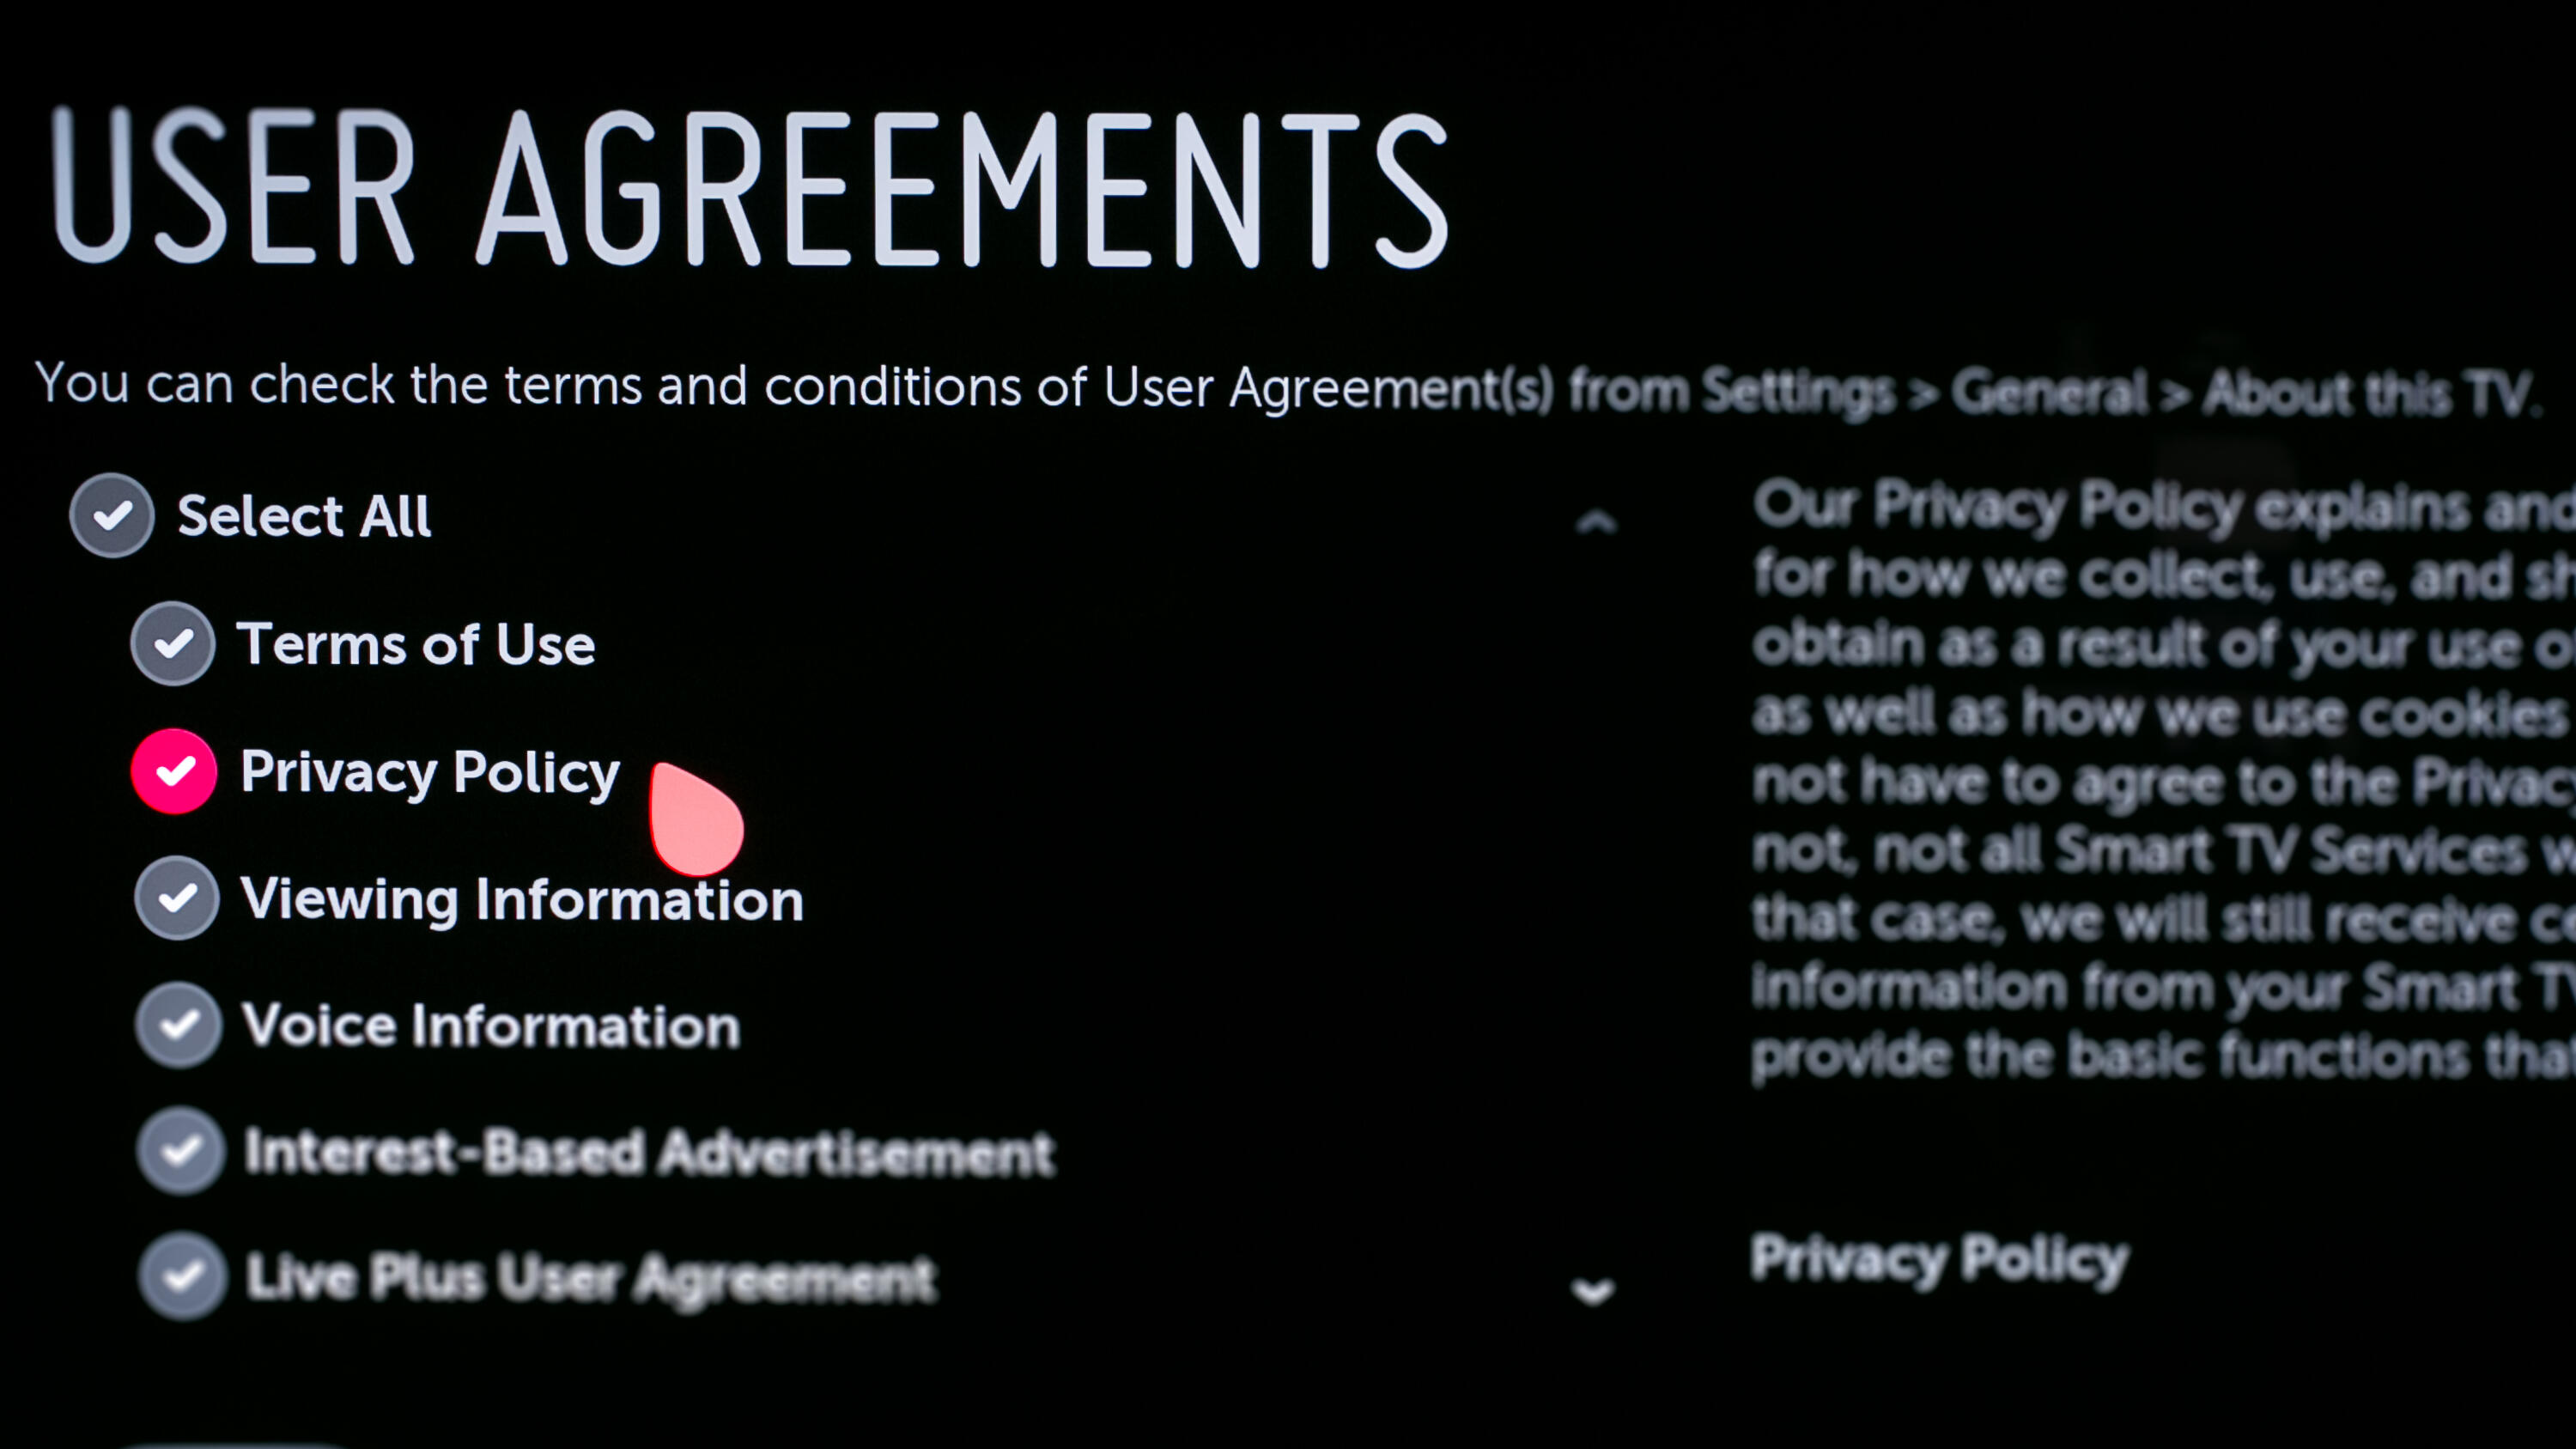 19-privacy-policy-user-agreements-tvs-2019-cnet